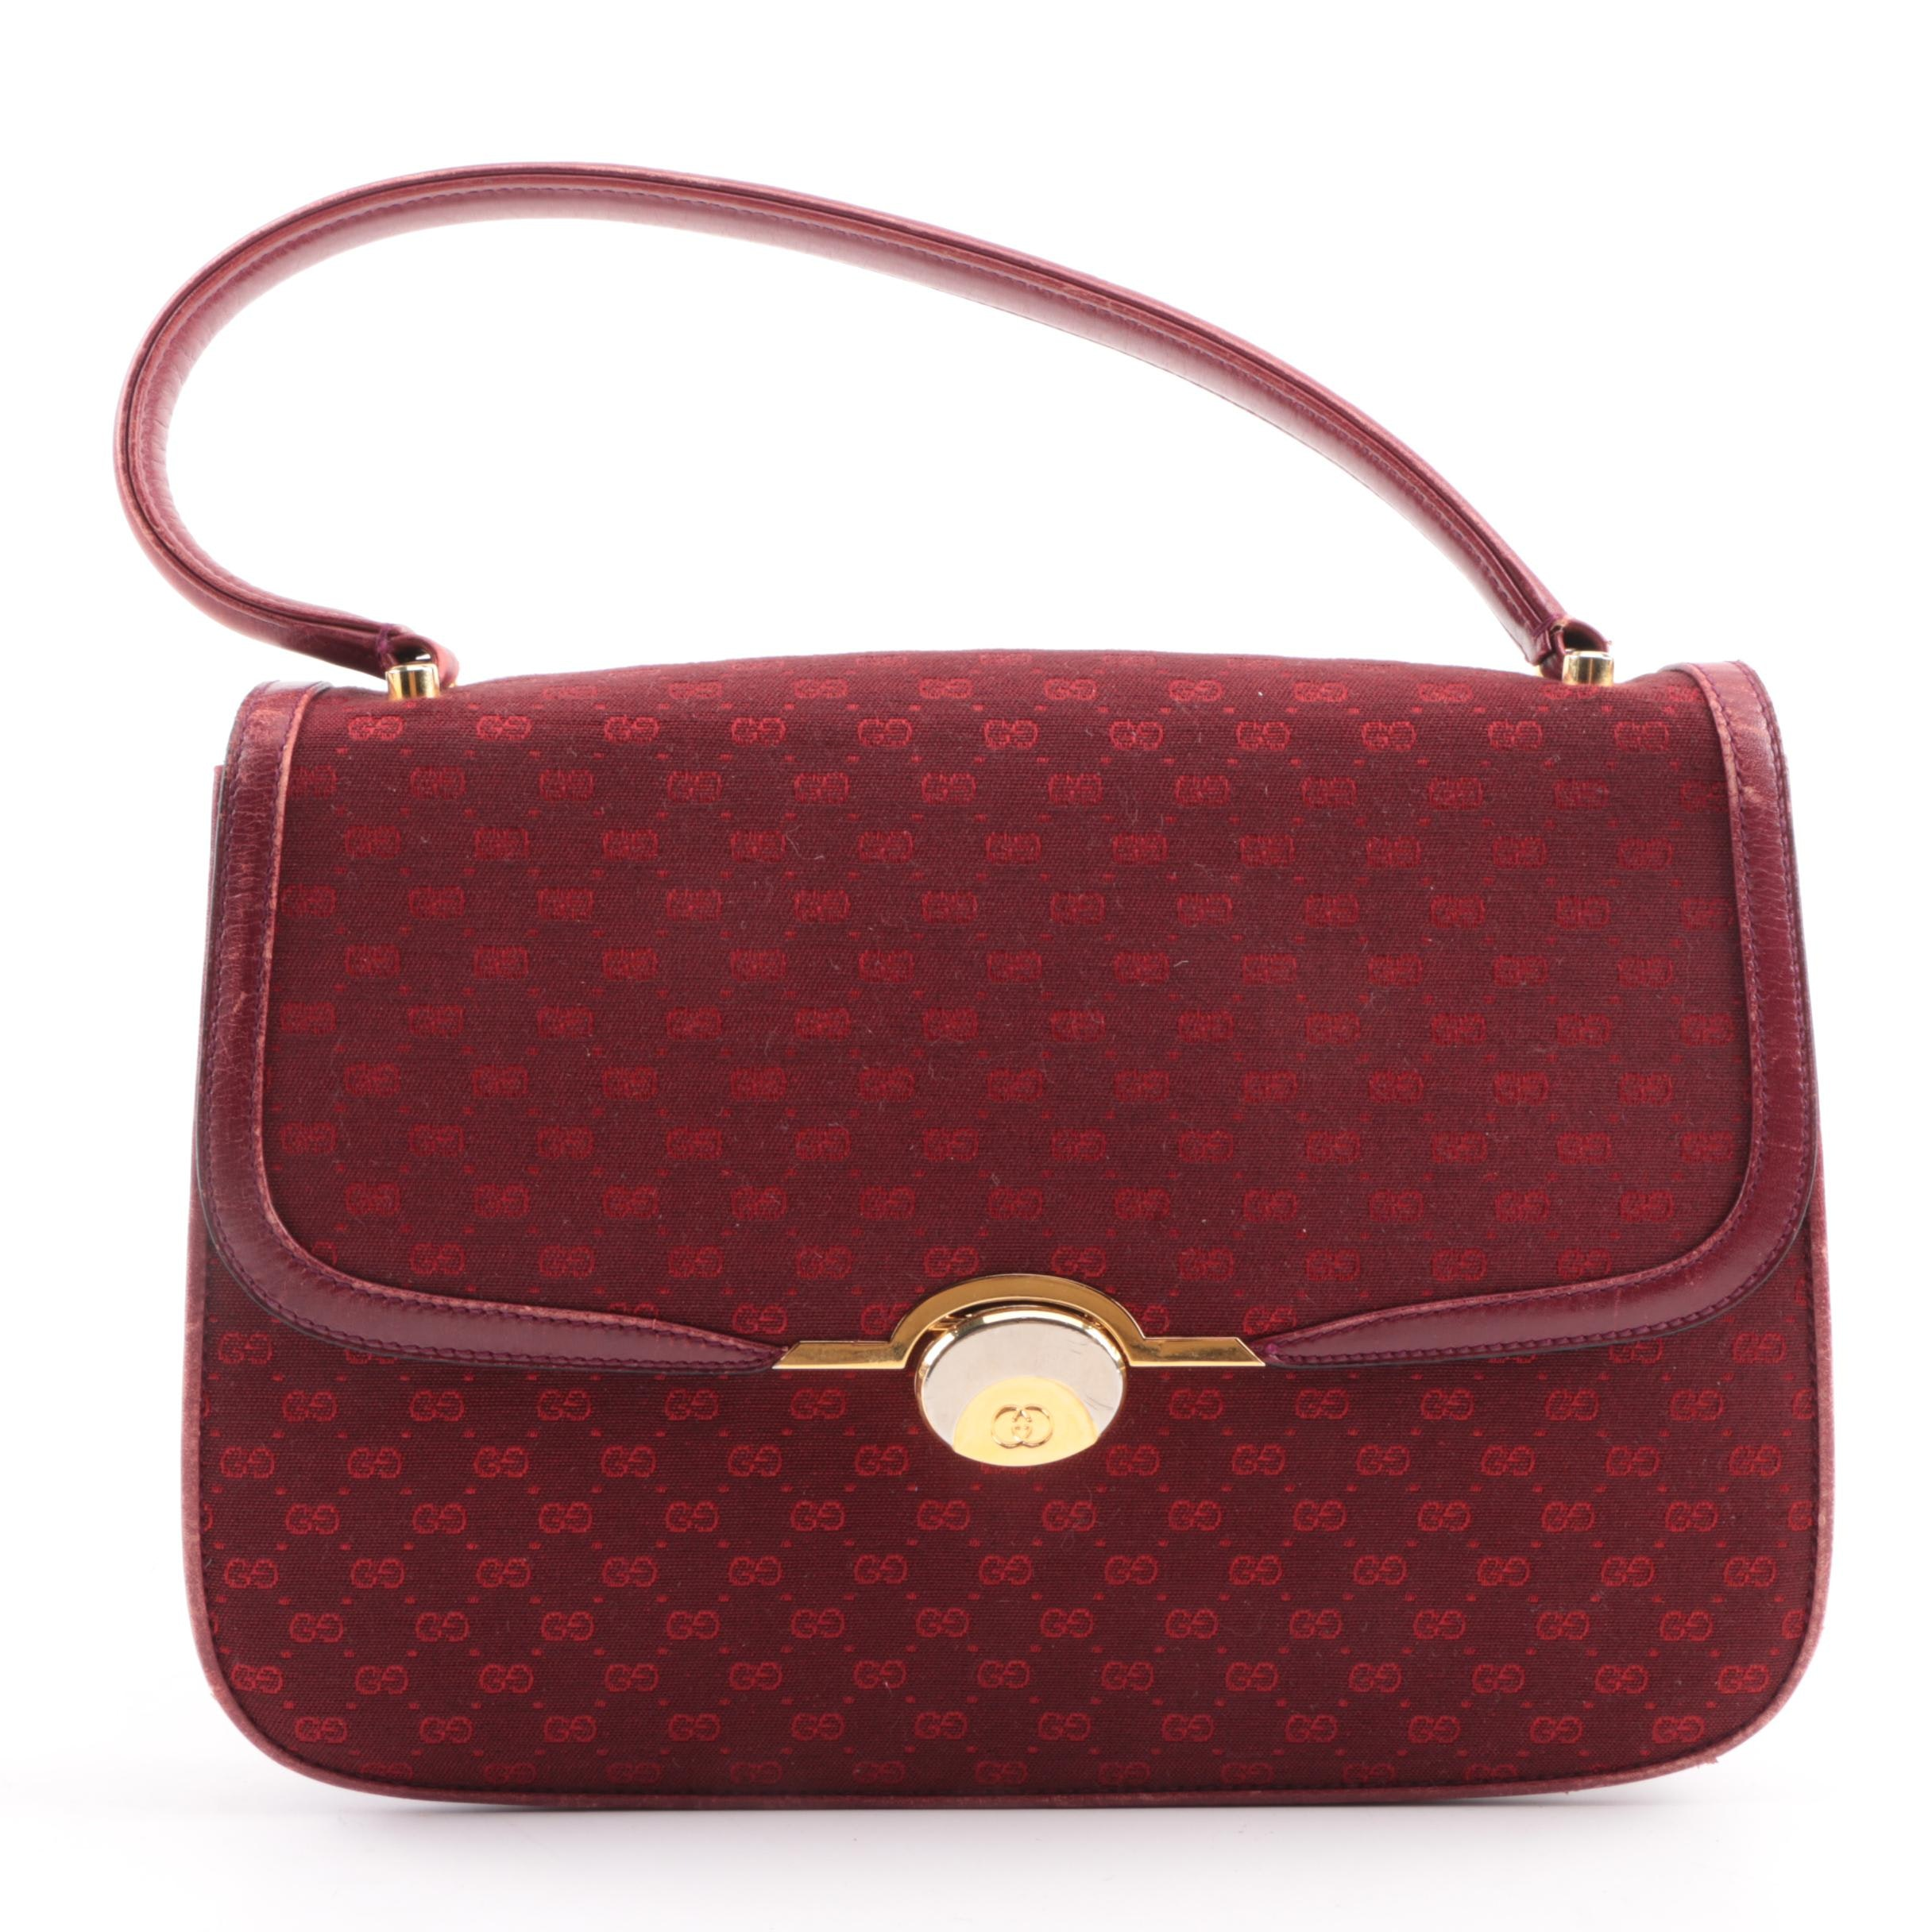 Vintage Gucci Maroon GG Canvas Top Handle Bag